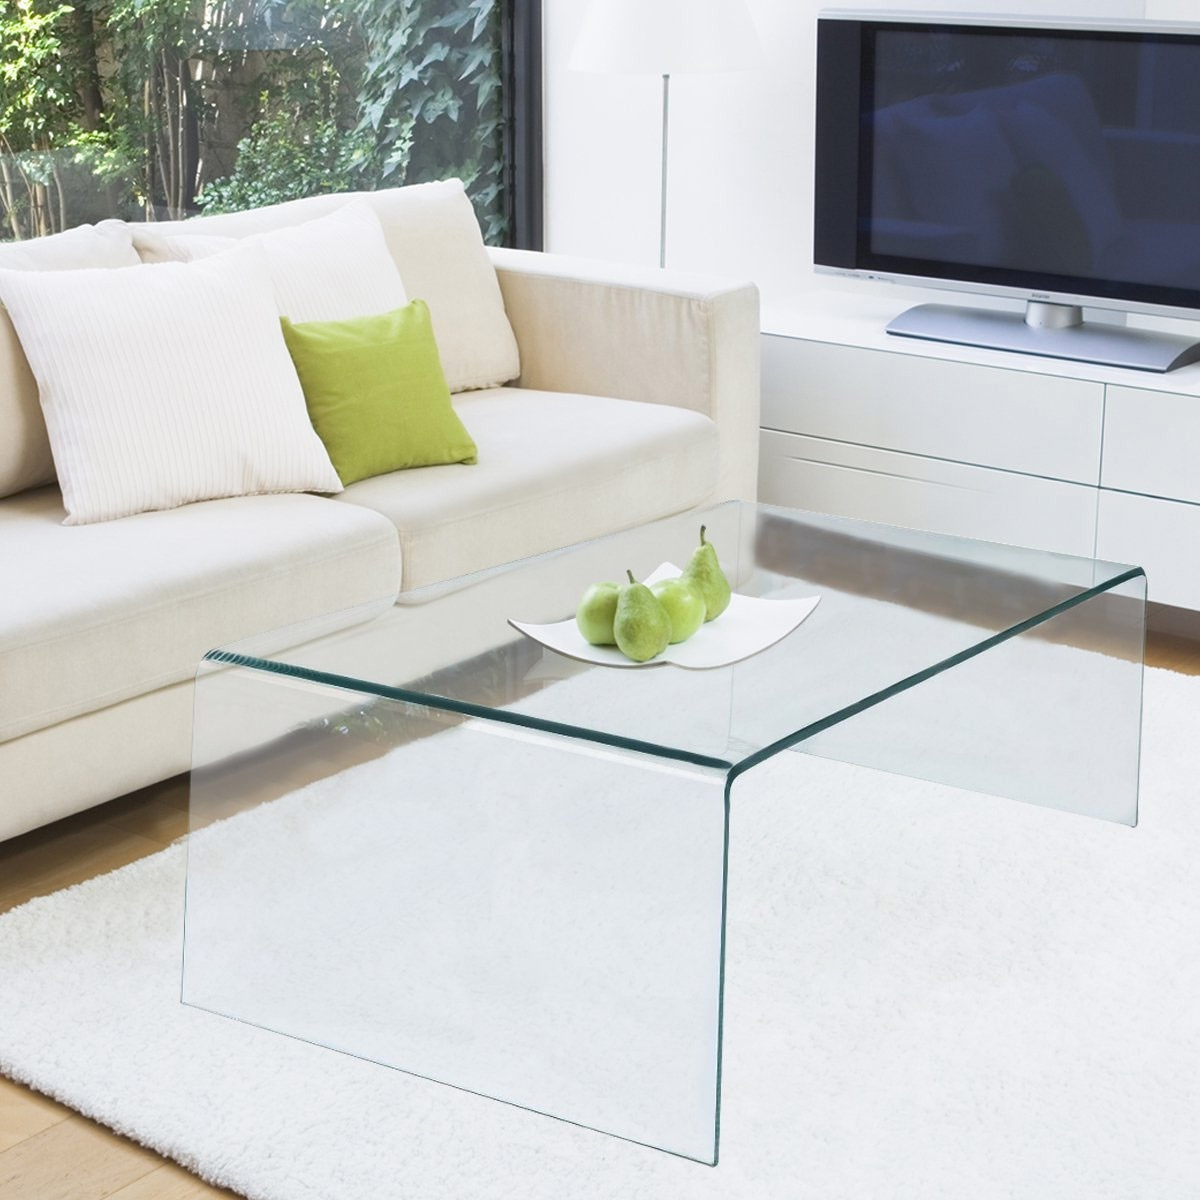 The Best Glass Coffee Tables Under $200 Intended For Recent Contemporary Curves Coffee Tables (View 15 of 20)